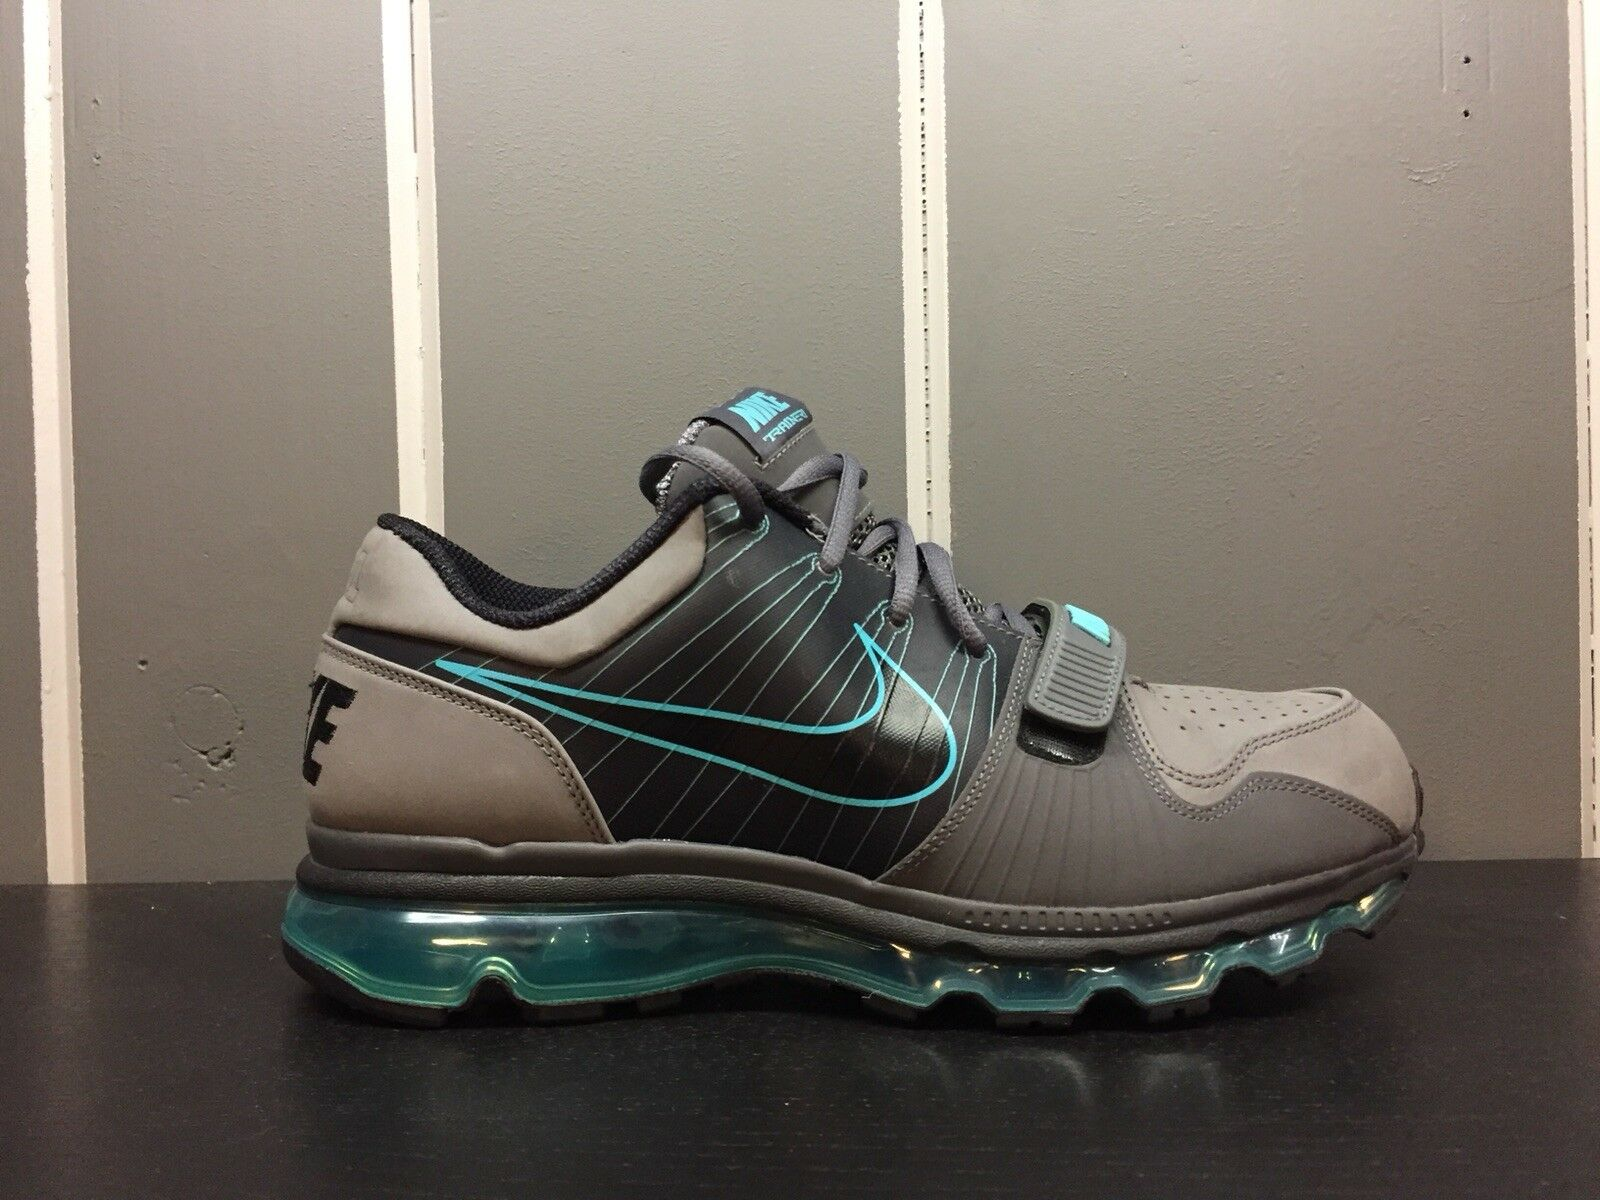 Nike Air Max Trainer 1 Running shoes Size 9.5 Men TR1 Flyknit Fly wire Cool Grey